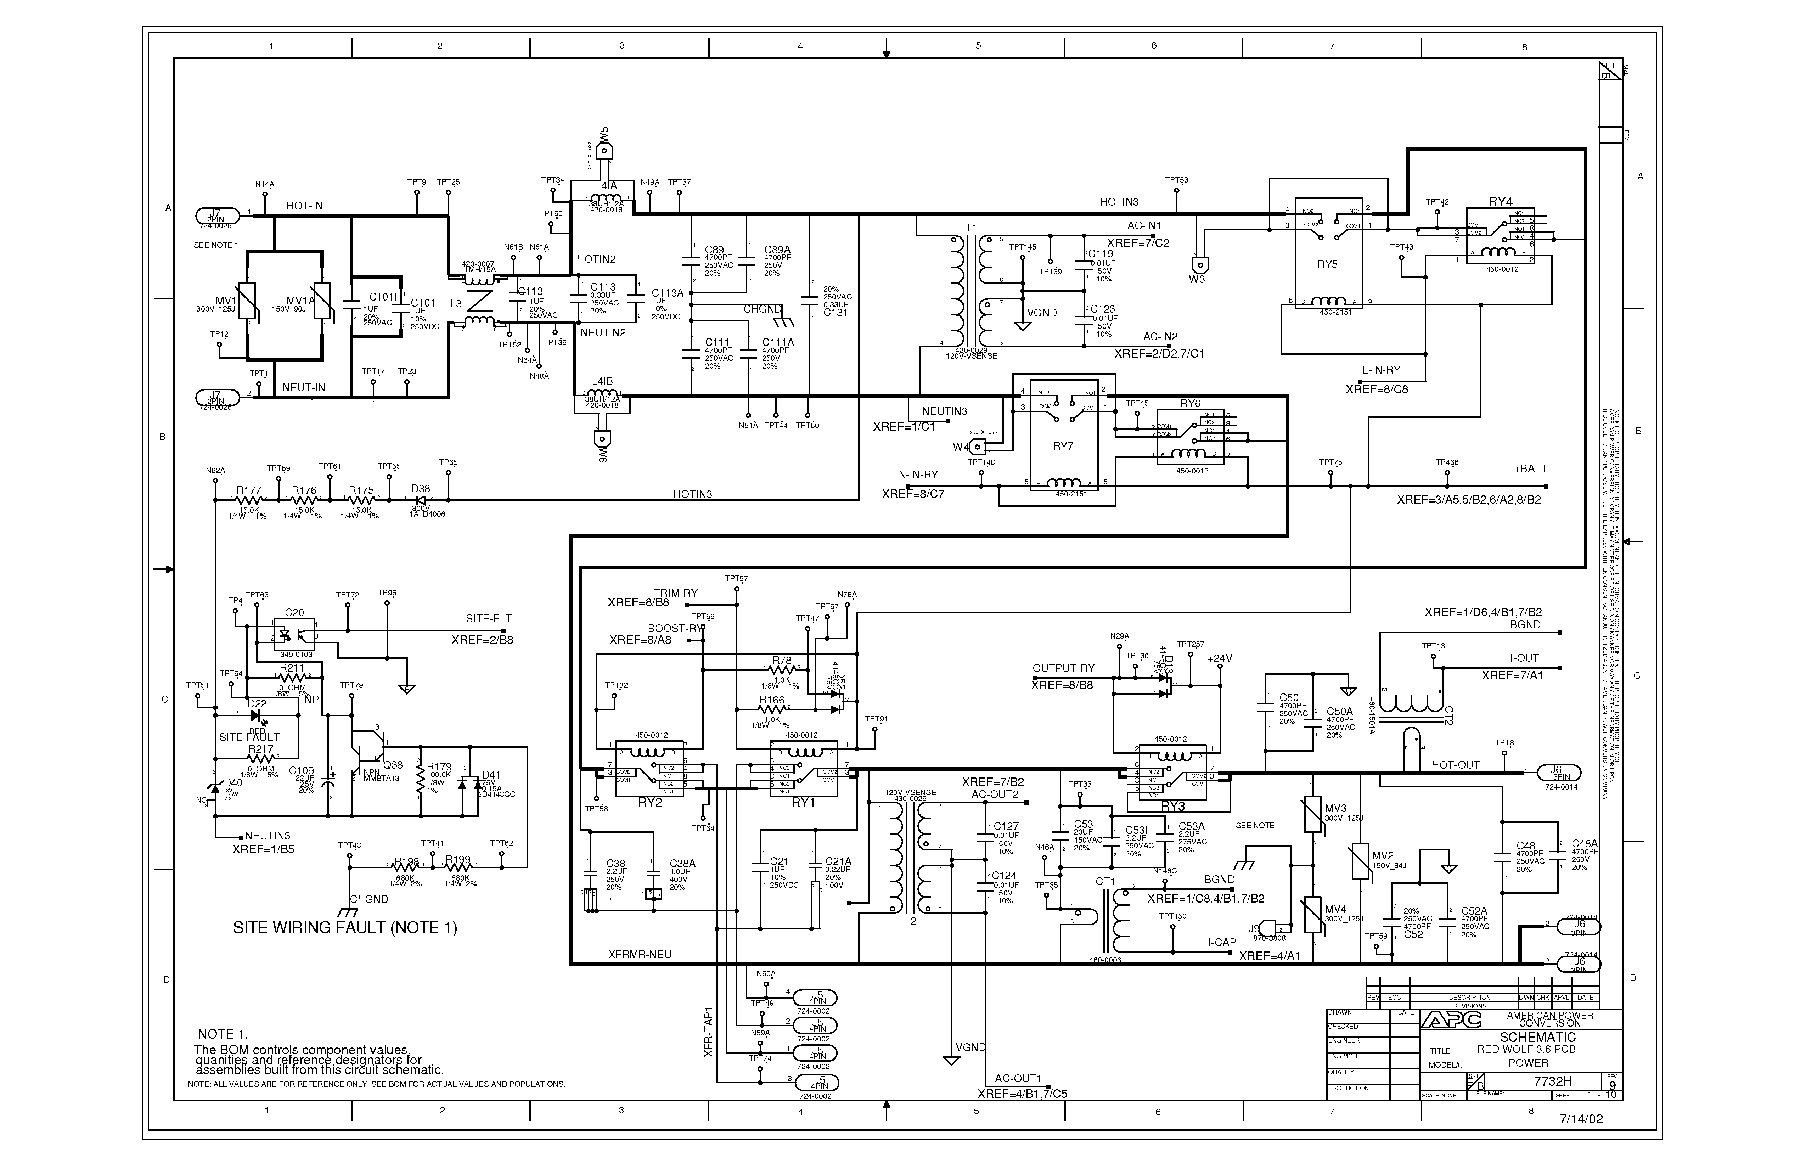 Scematic Diagram: Ups Wiring Diagram Pdf on transformer diagrams, pinout diagrams, hvac diagrams, engine diagrams, smart car diagrams, electrical diagrams, friendship bracelet diagrams, sincgars radio configurations diagrams, motor diagrams, switch diagrams, internet of things diagrams, troubleshooting diagrams, lighting diagrams, gmc fuse box diagrams, honda motorcycle repair diagrams, series and parallel circuits diagrams, battery diagrams, led circuit diagrams, electronic circuit diagrams,